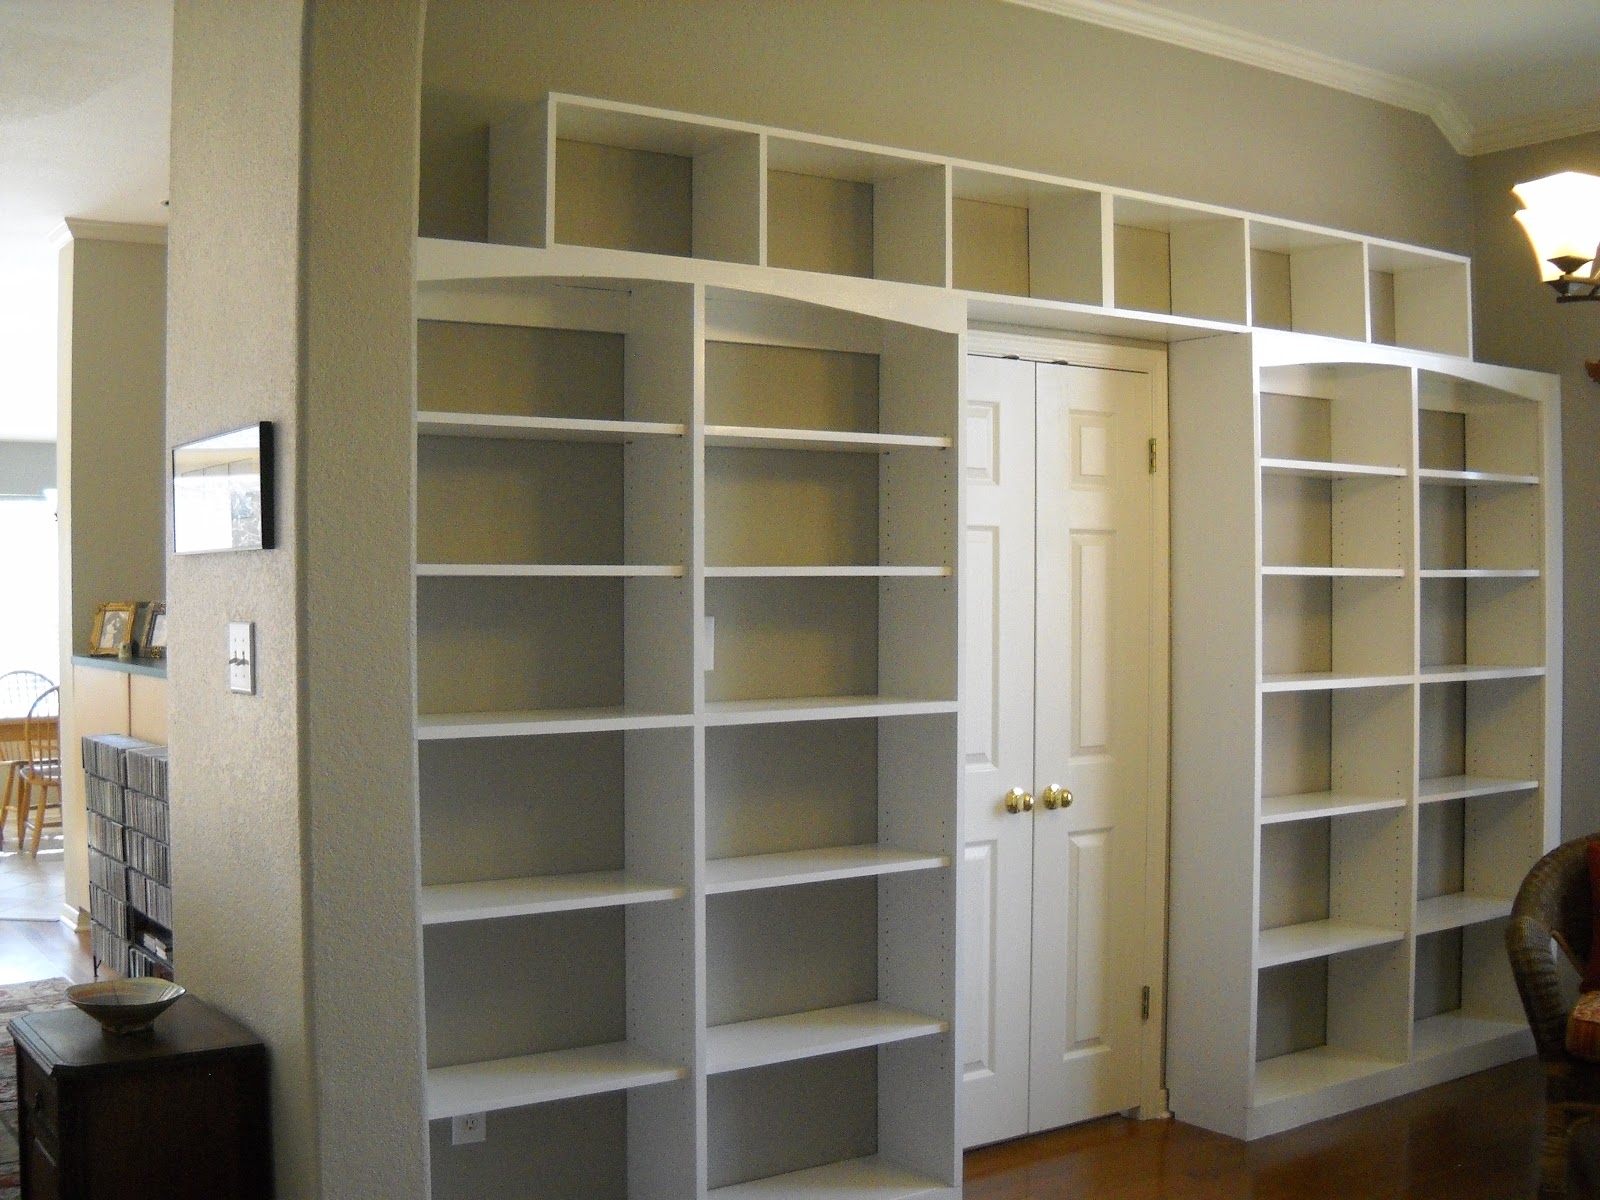 #594F38 About 12 Ft Wide 8 Ft Tall with 1600x1200 px of Best 8 Foot Tall Bookcases 12001600 image @ avoidforclosure.info